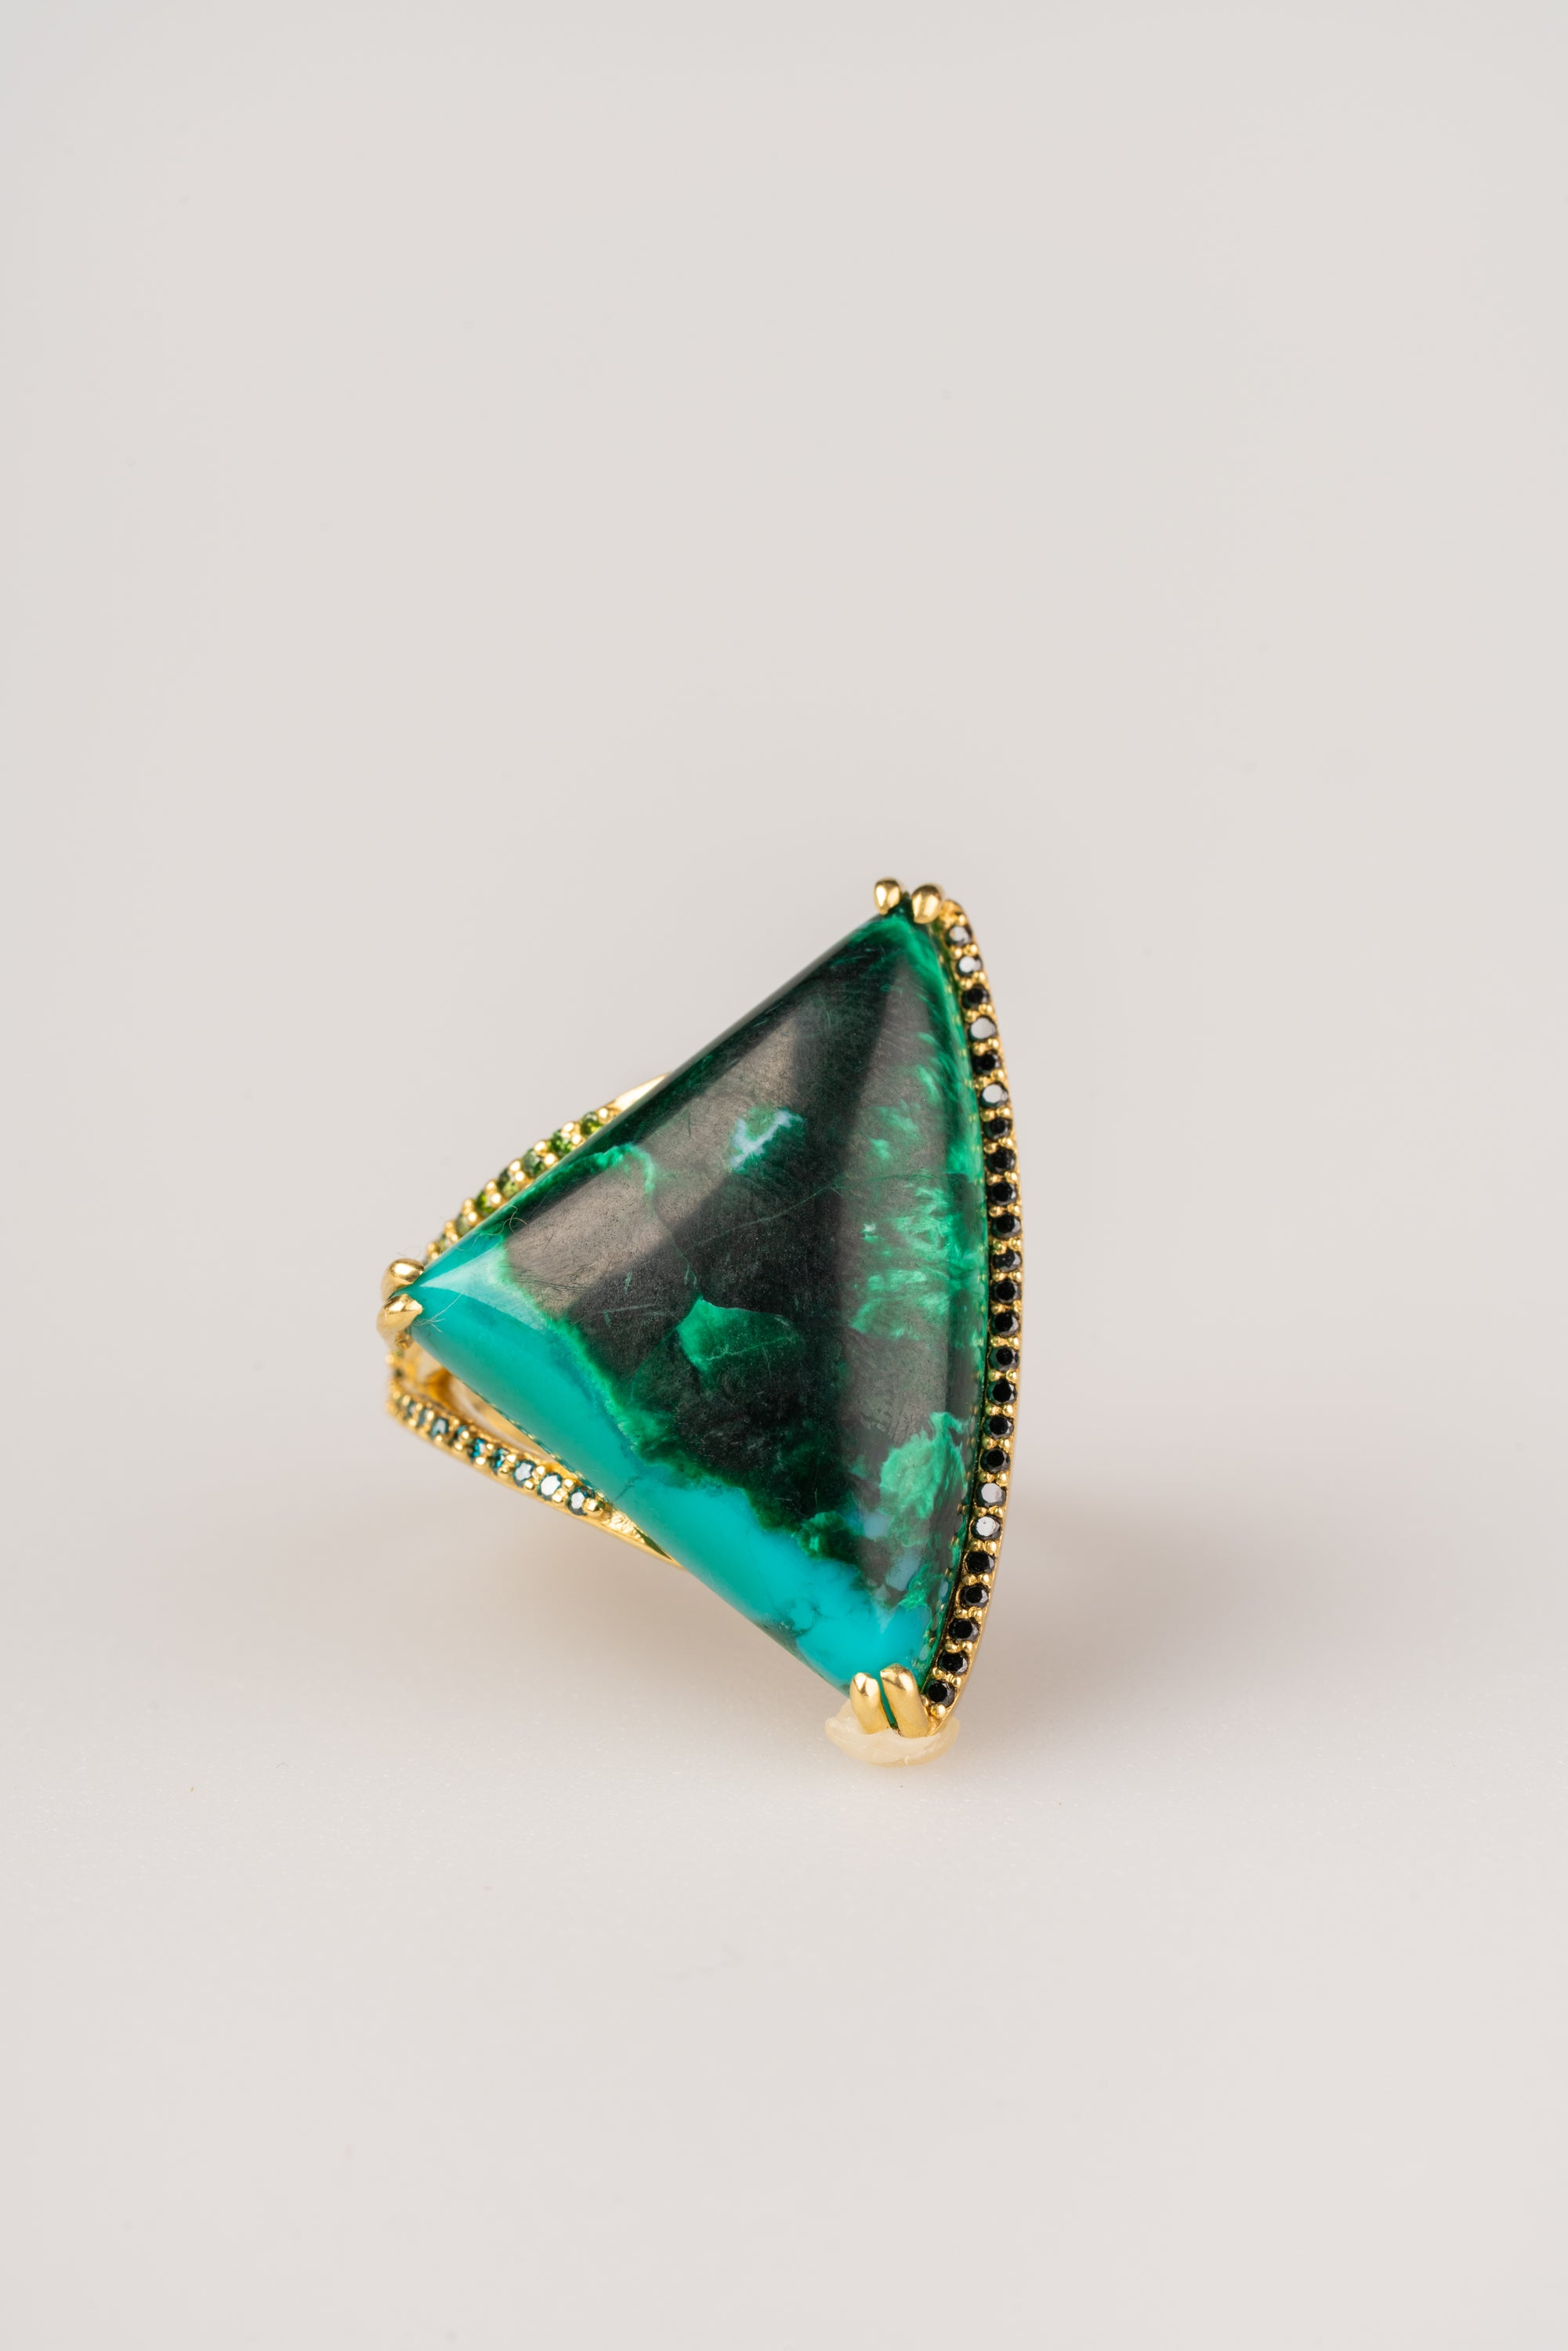 Chrysocholla/Malachite in 18k Yellow Gold with Blue, Black and Green Diamonds